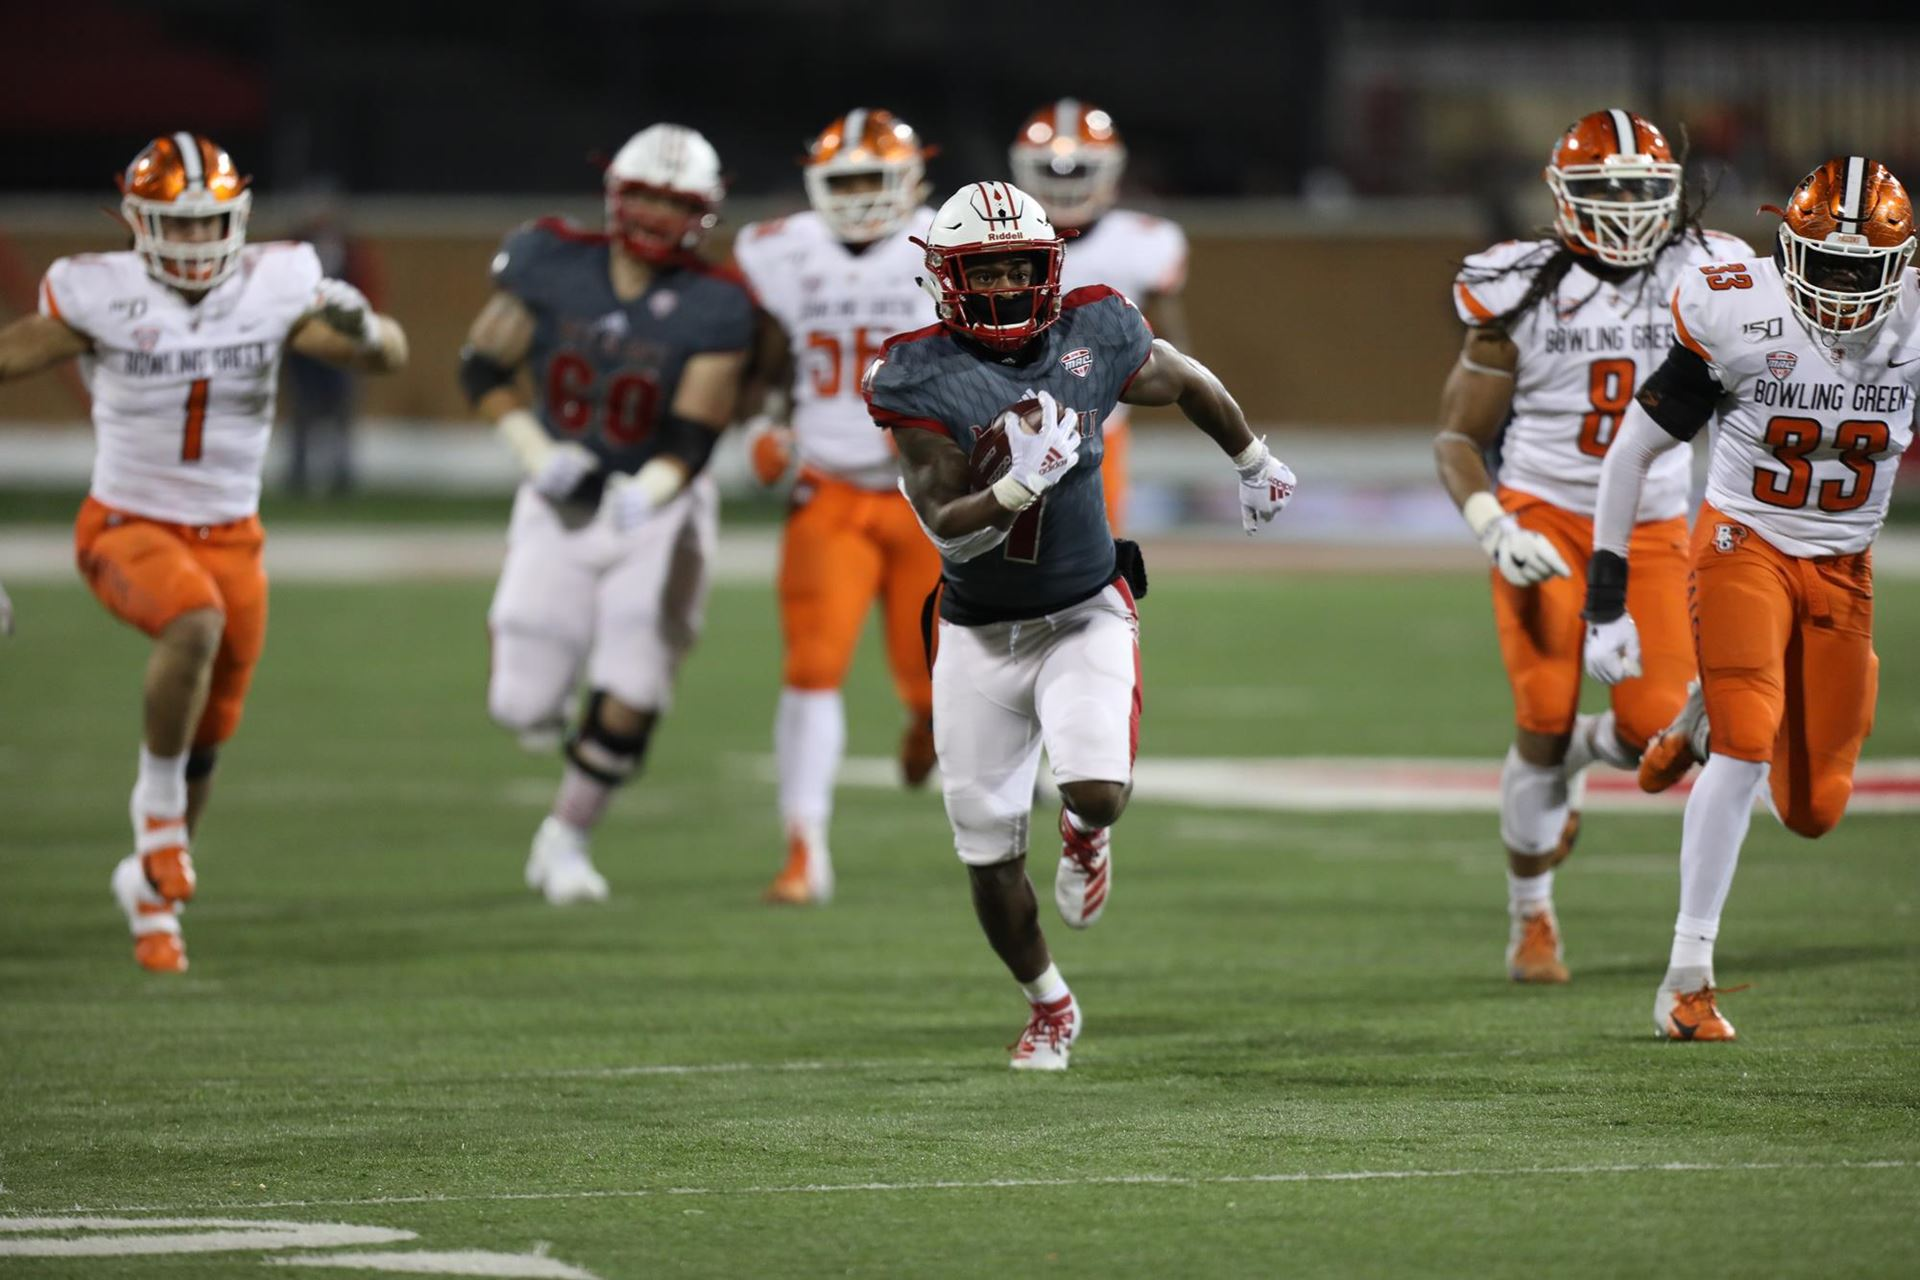 Miami (Ohio) RedHawks running back Jaylon Bester carries the ball against the Bowling Green Falcons